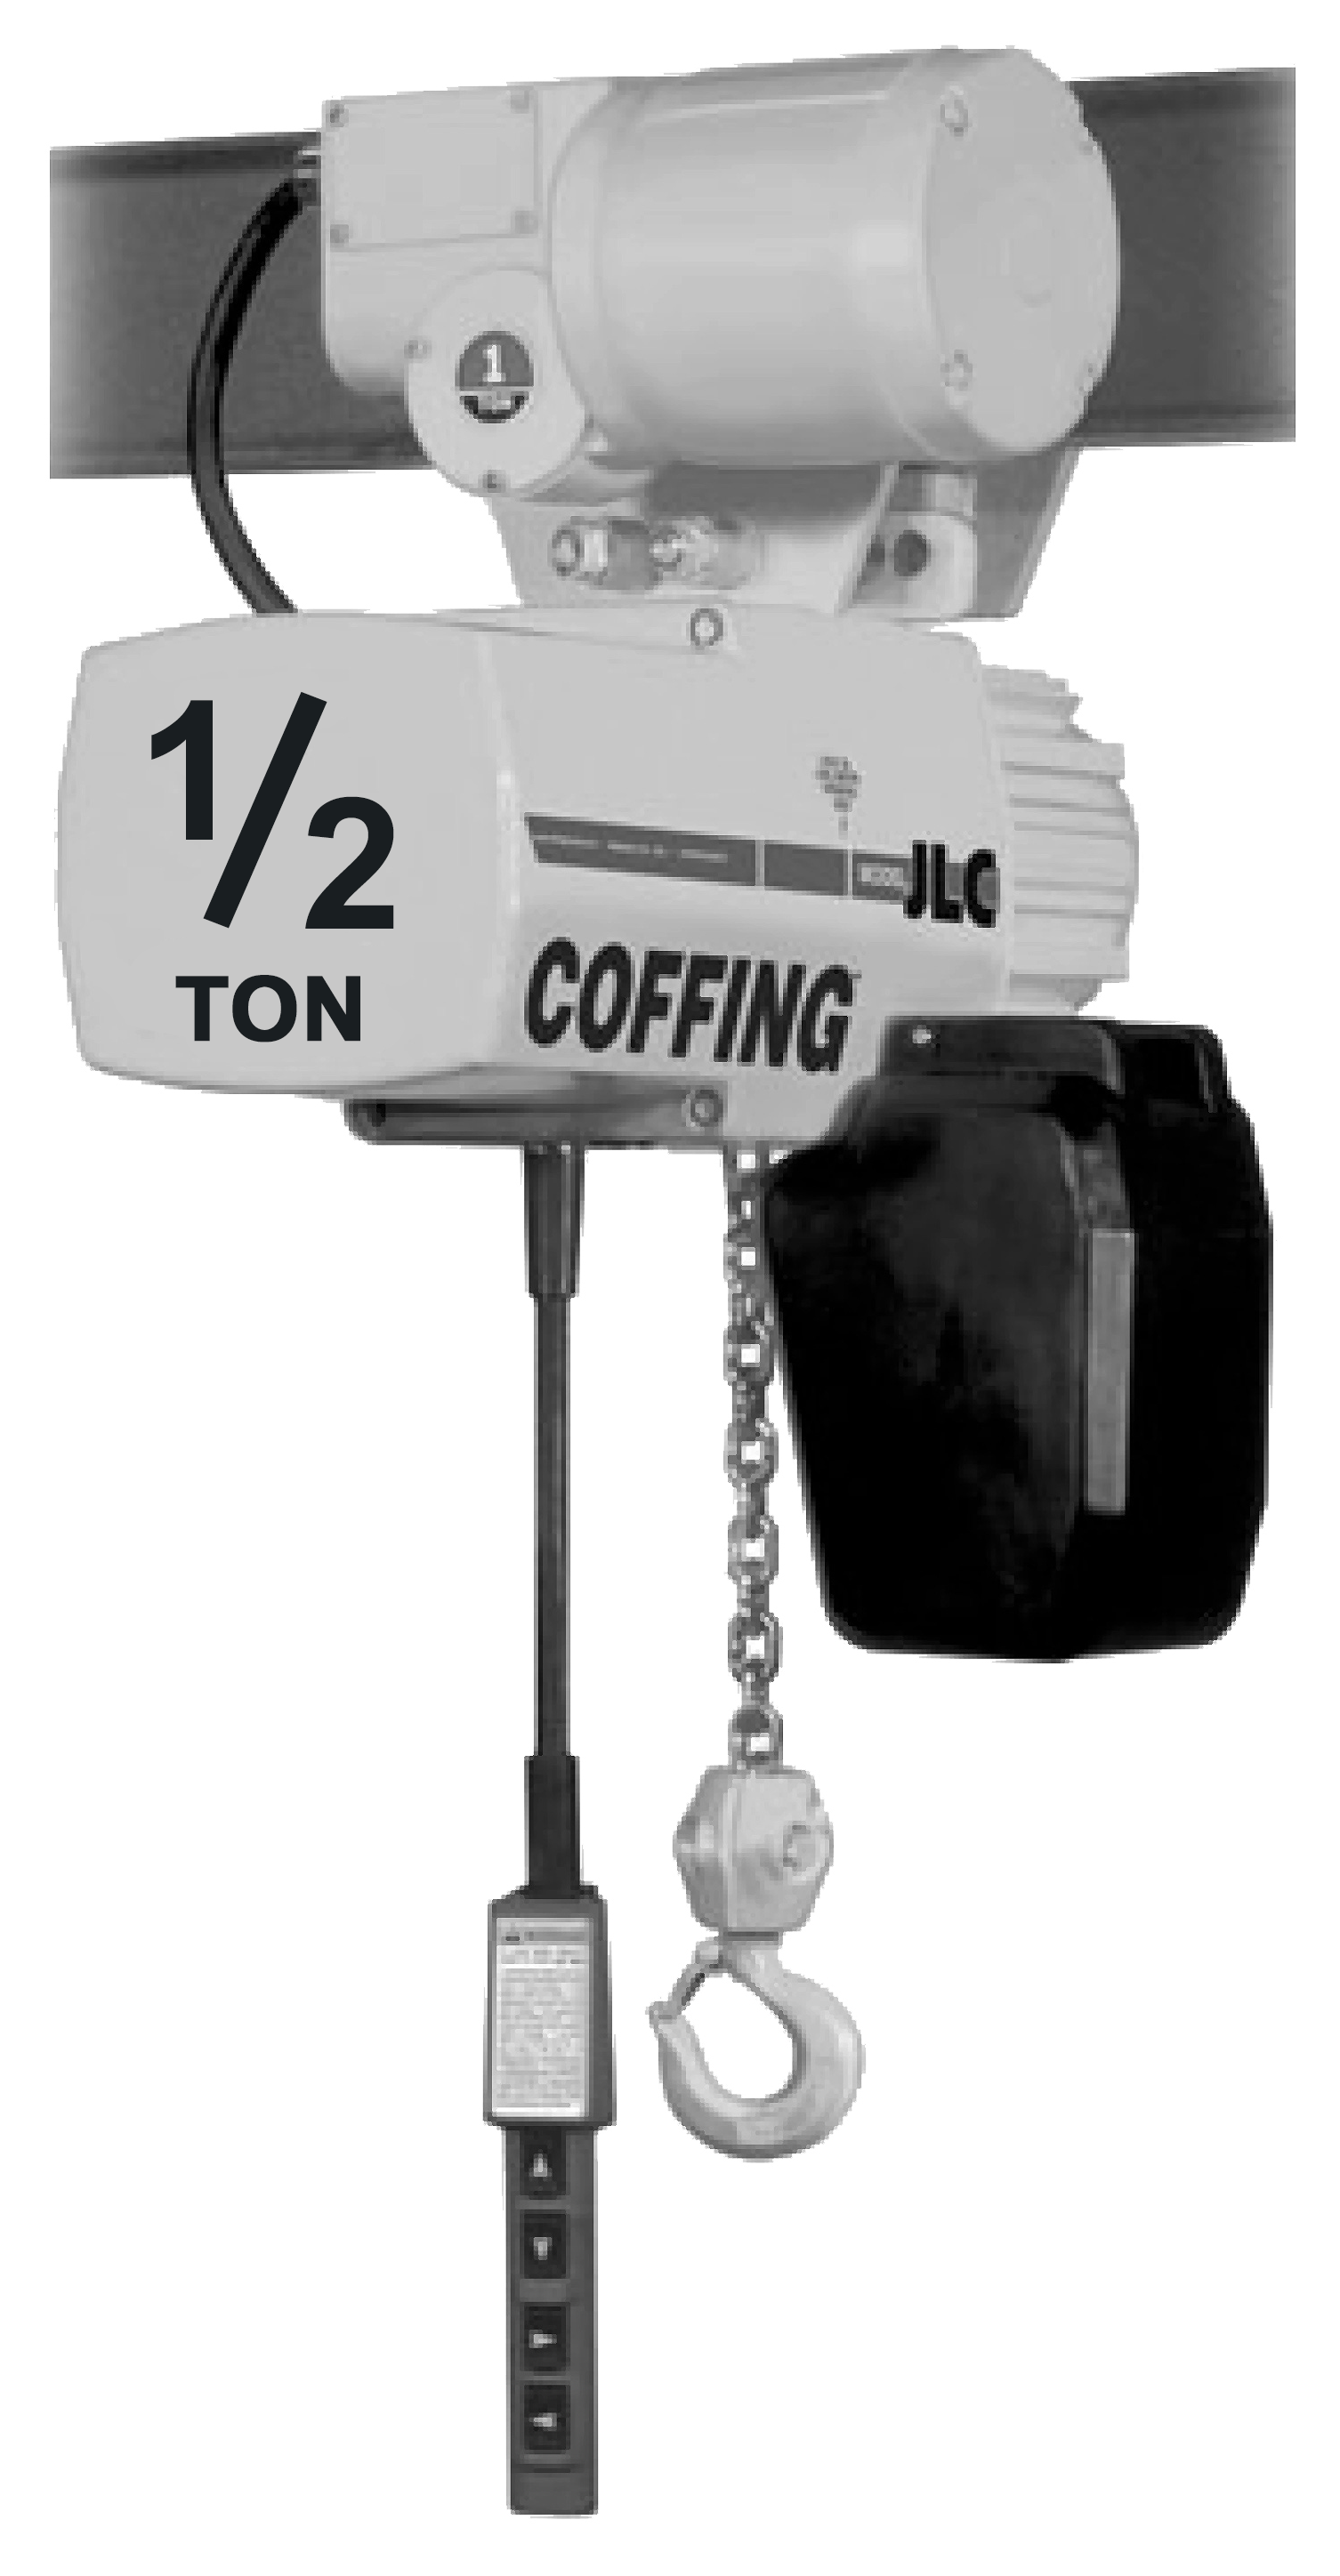 1/2-Ton Coffing JLC Electric Chain Hoist with Motorized Trolley